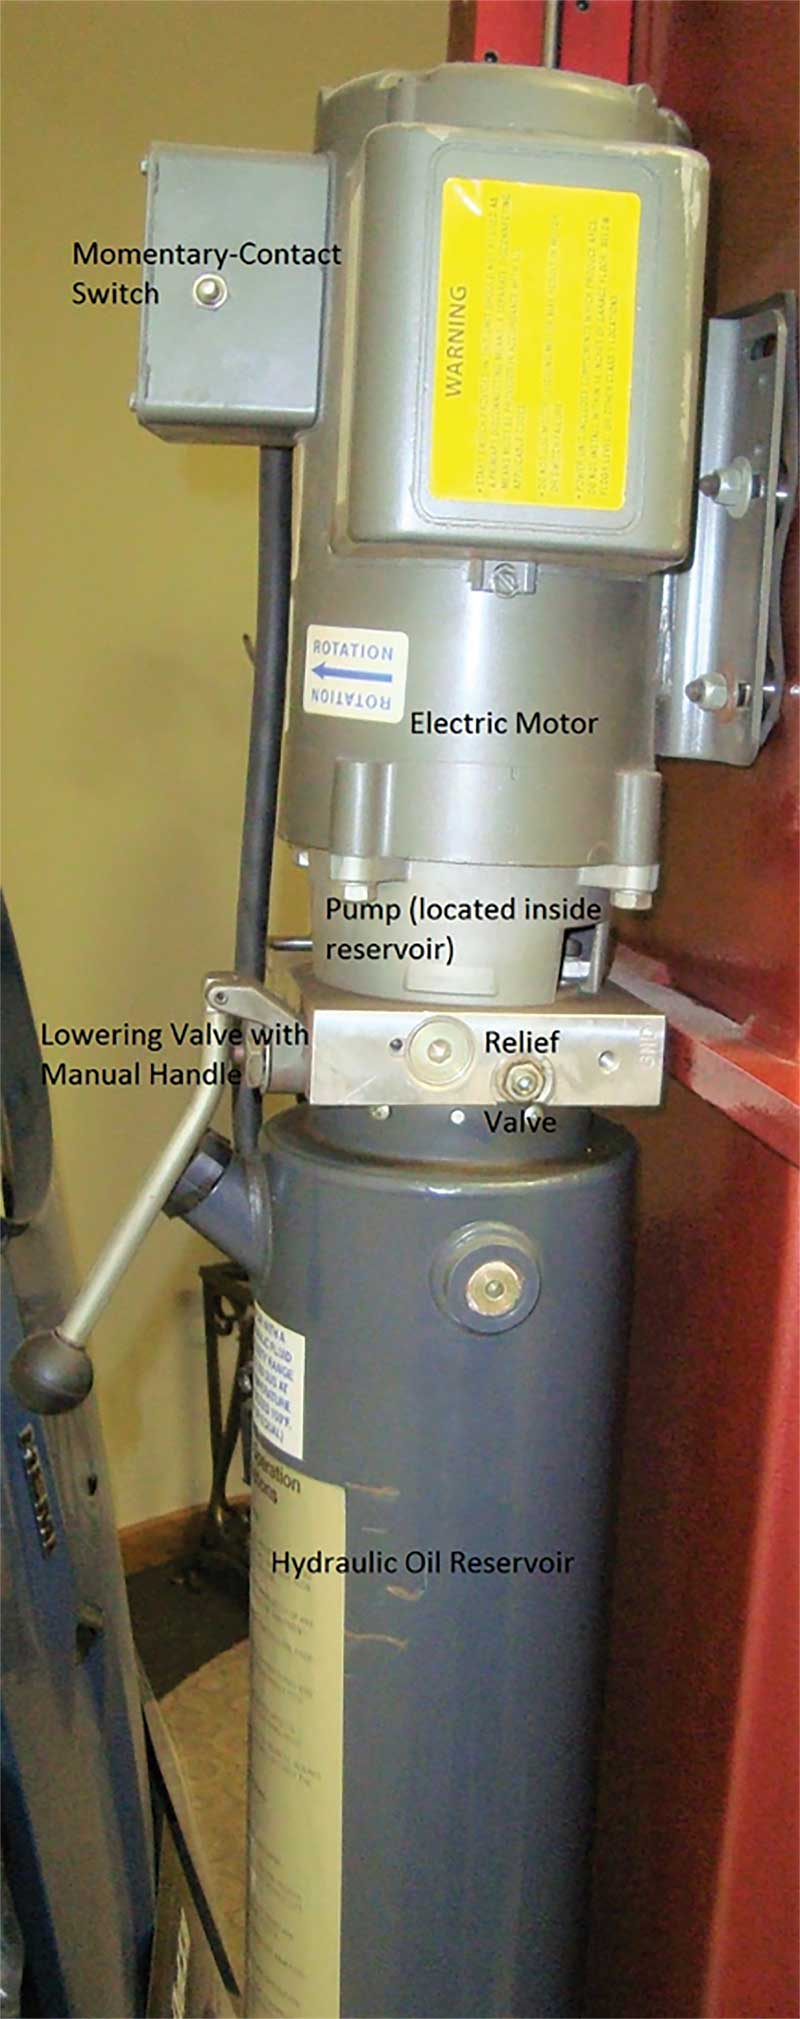 Photo 4. Typical hydraulic power unit assembly consisting of an electric motor, momentary-contact switch, pump, relief valve, and reservoir.